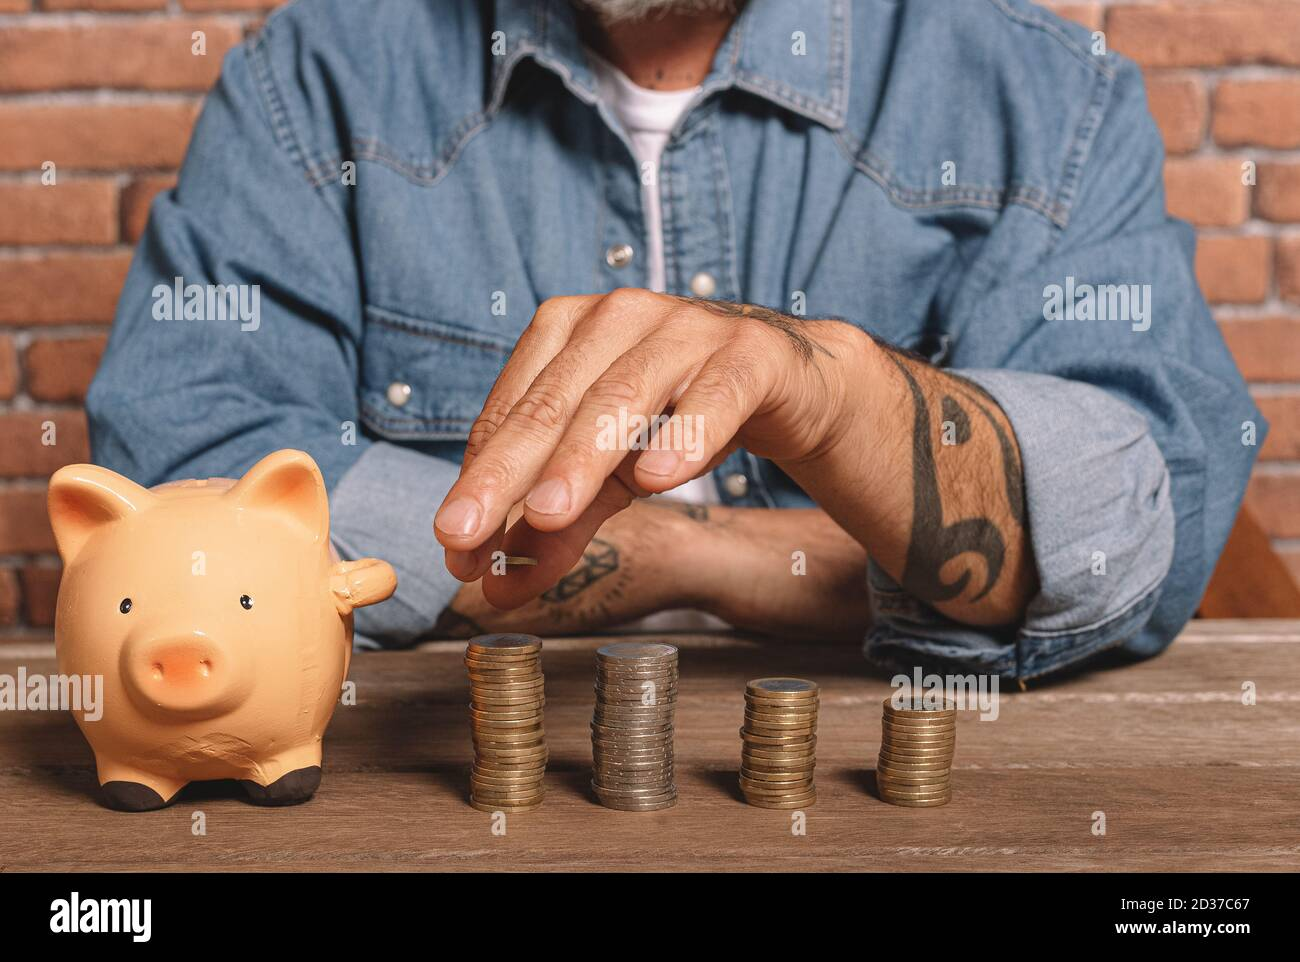 Hipster man stacks coins with a pig piggy bank on the table to save money and financial concept. Stock Photo